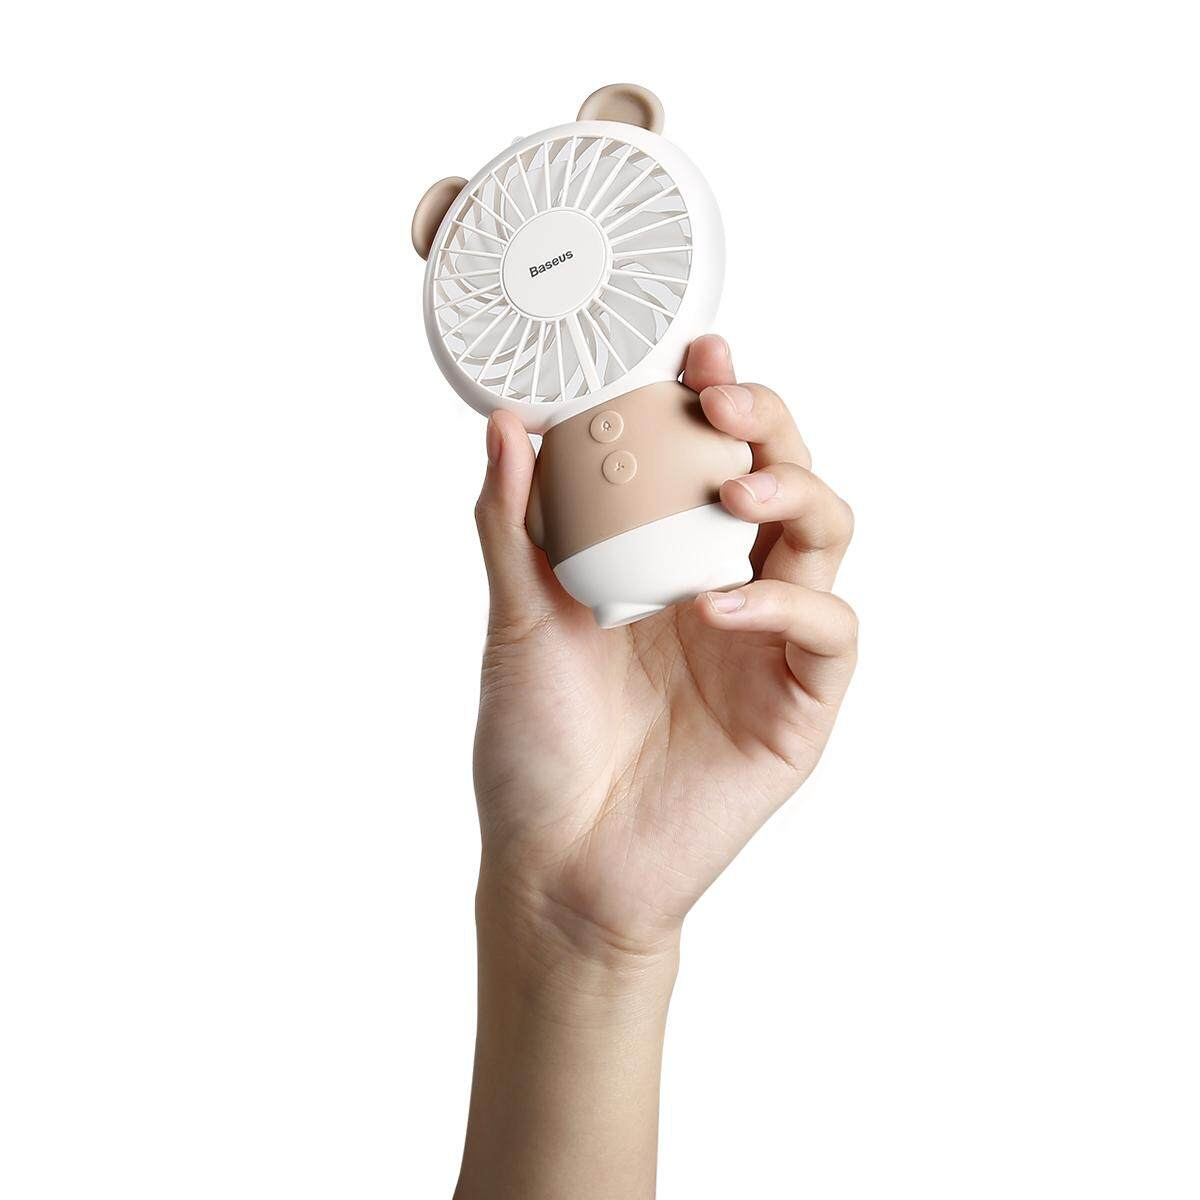 Baseus CXBER Portable USB Mini Handheld Fan Ajustable Rechargeable Quiet Cooling